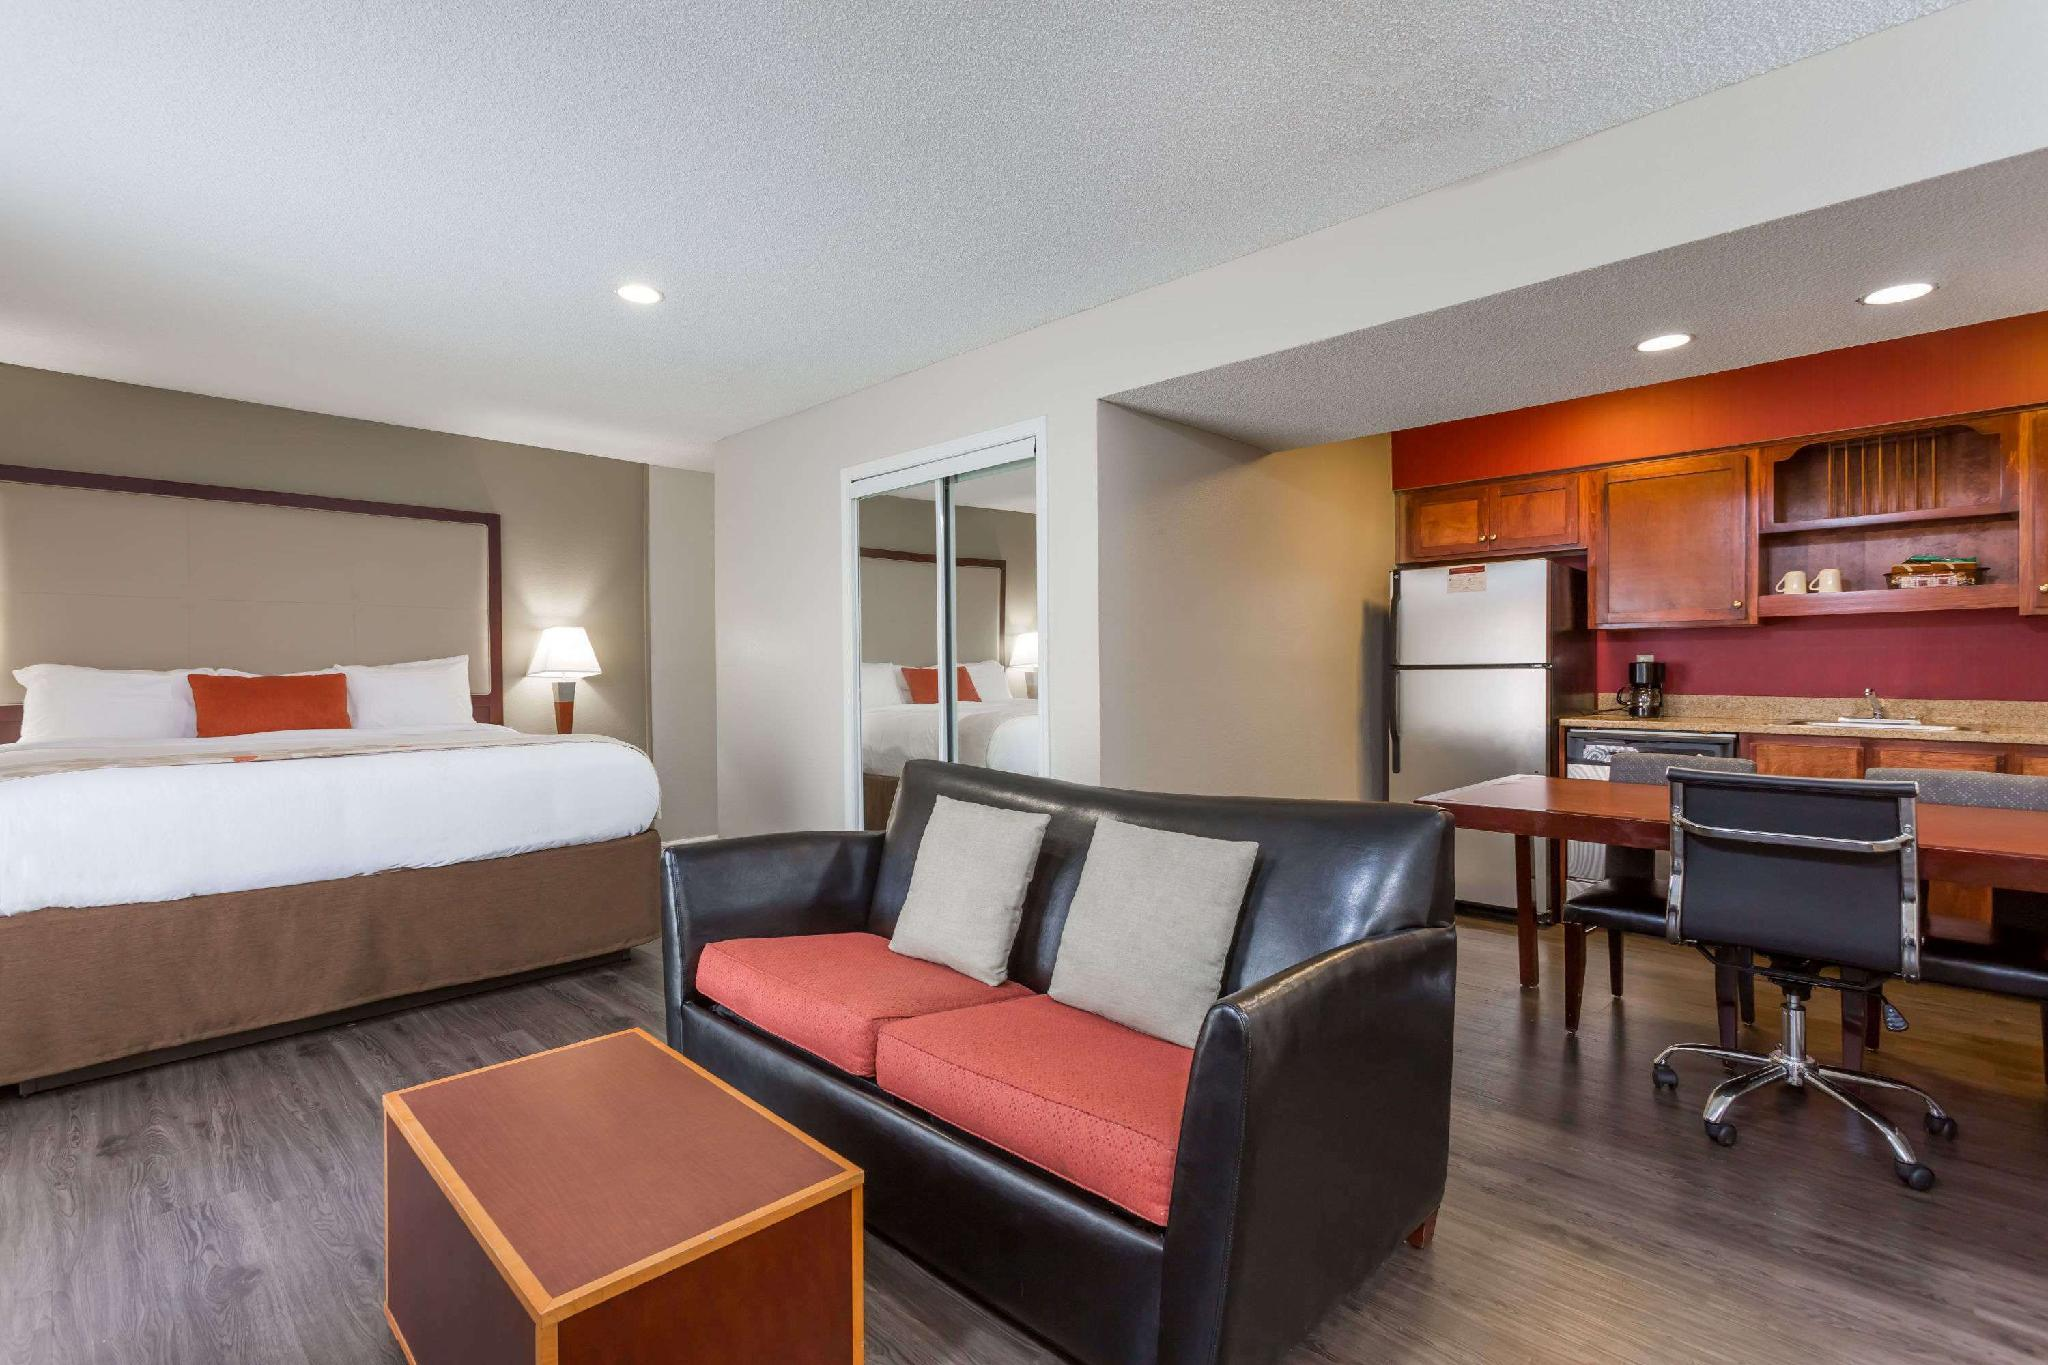 Hawthorn suites by wyndham north charleston sc in - 2 bedroom hotels in charleston sc ...